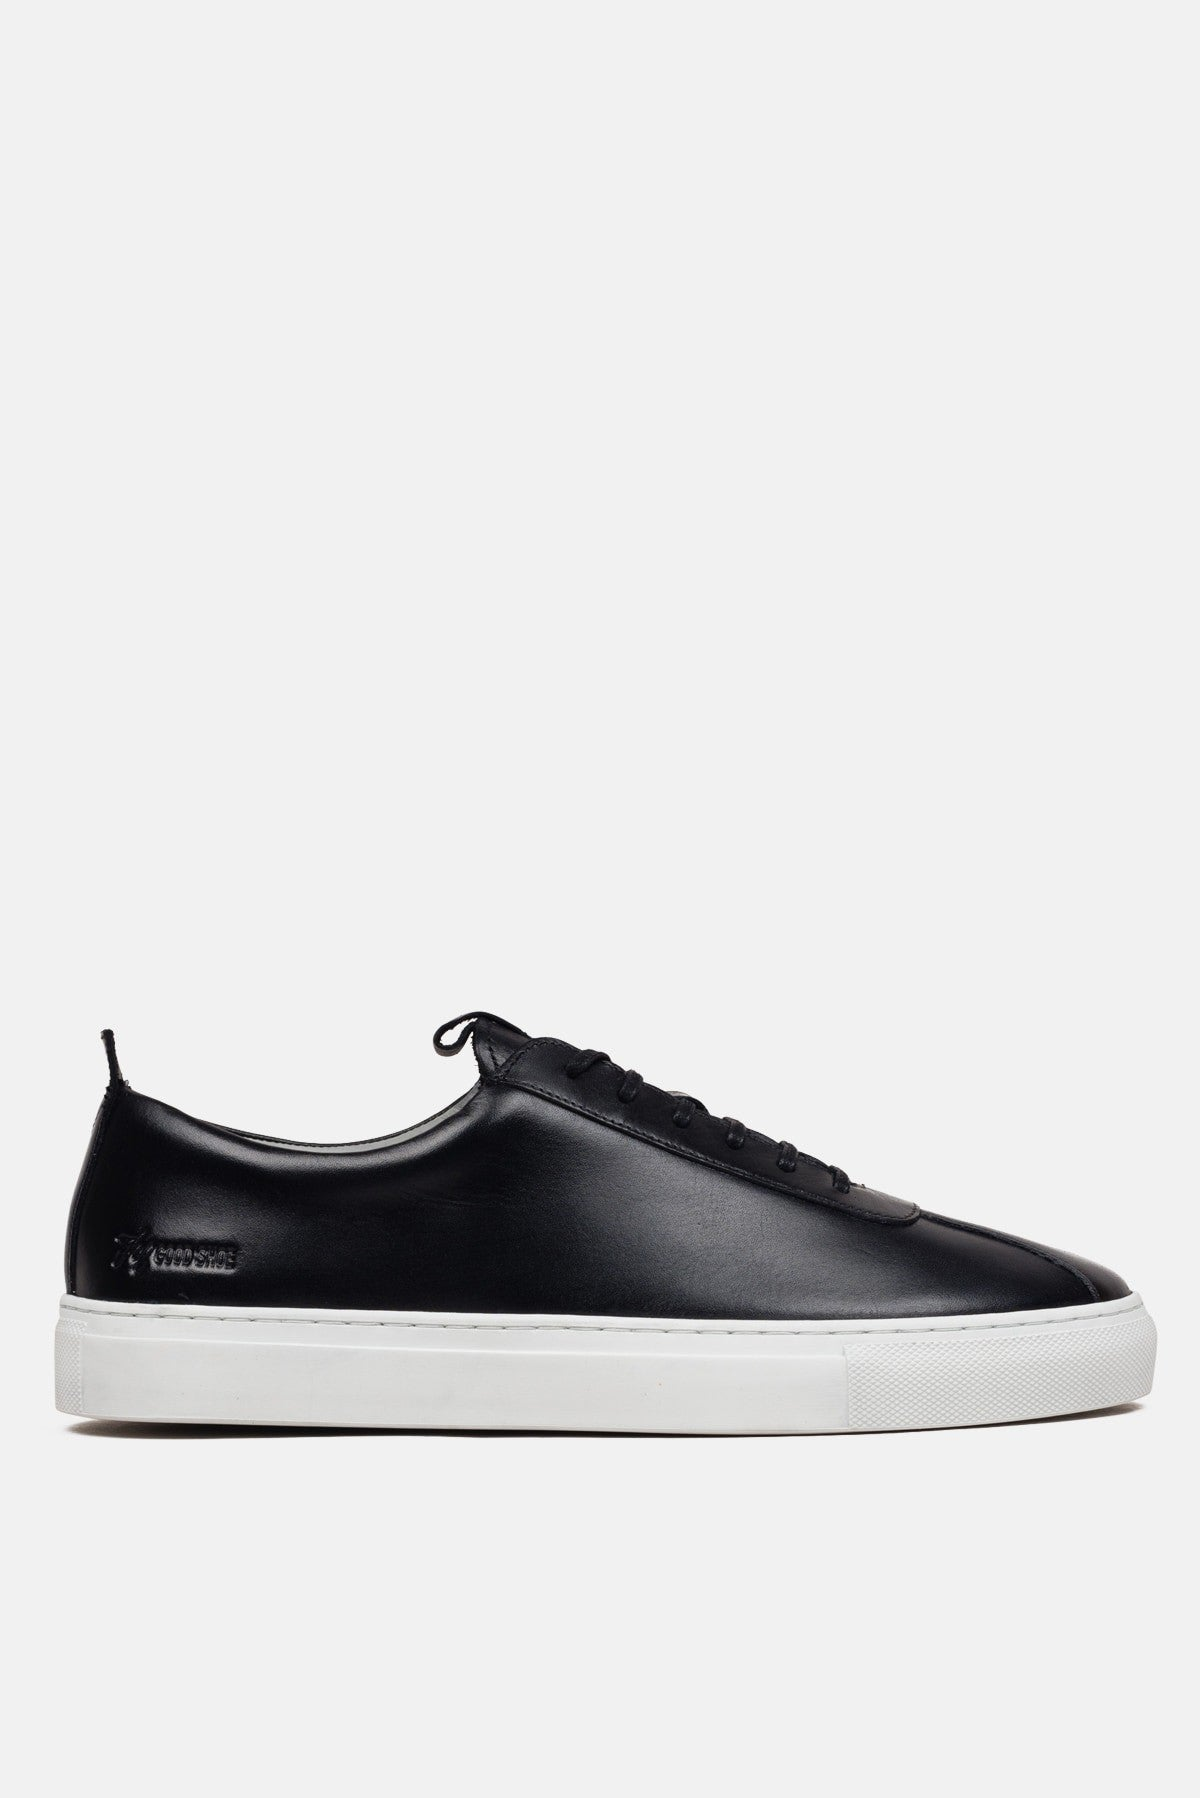 Available Shoes Sneaker From Grenson Priory 1 OvFwx8